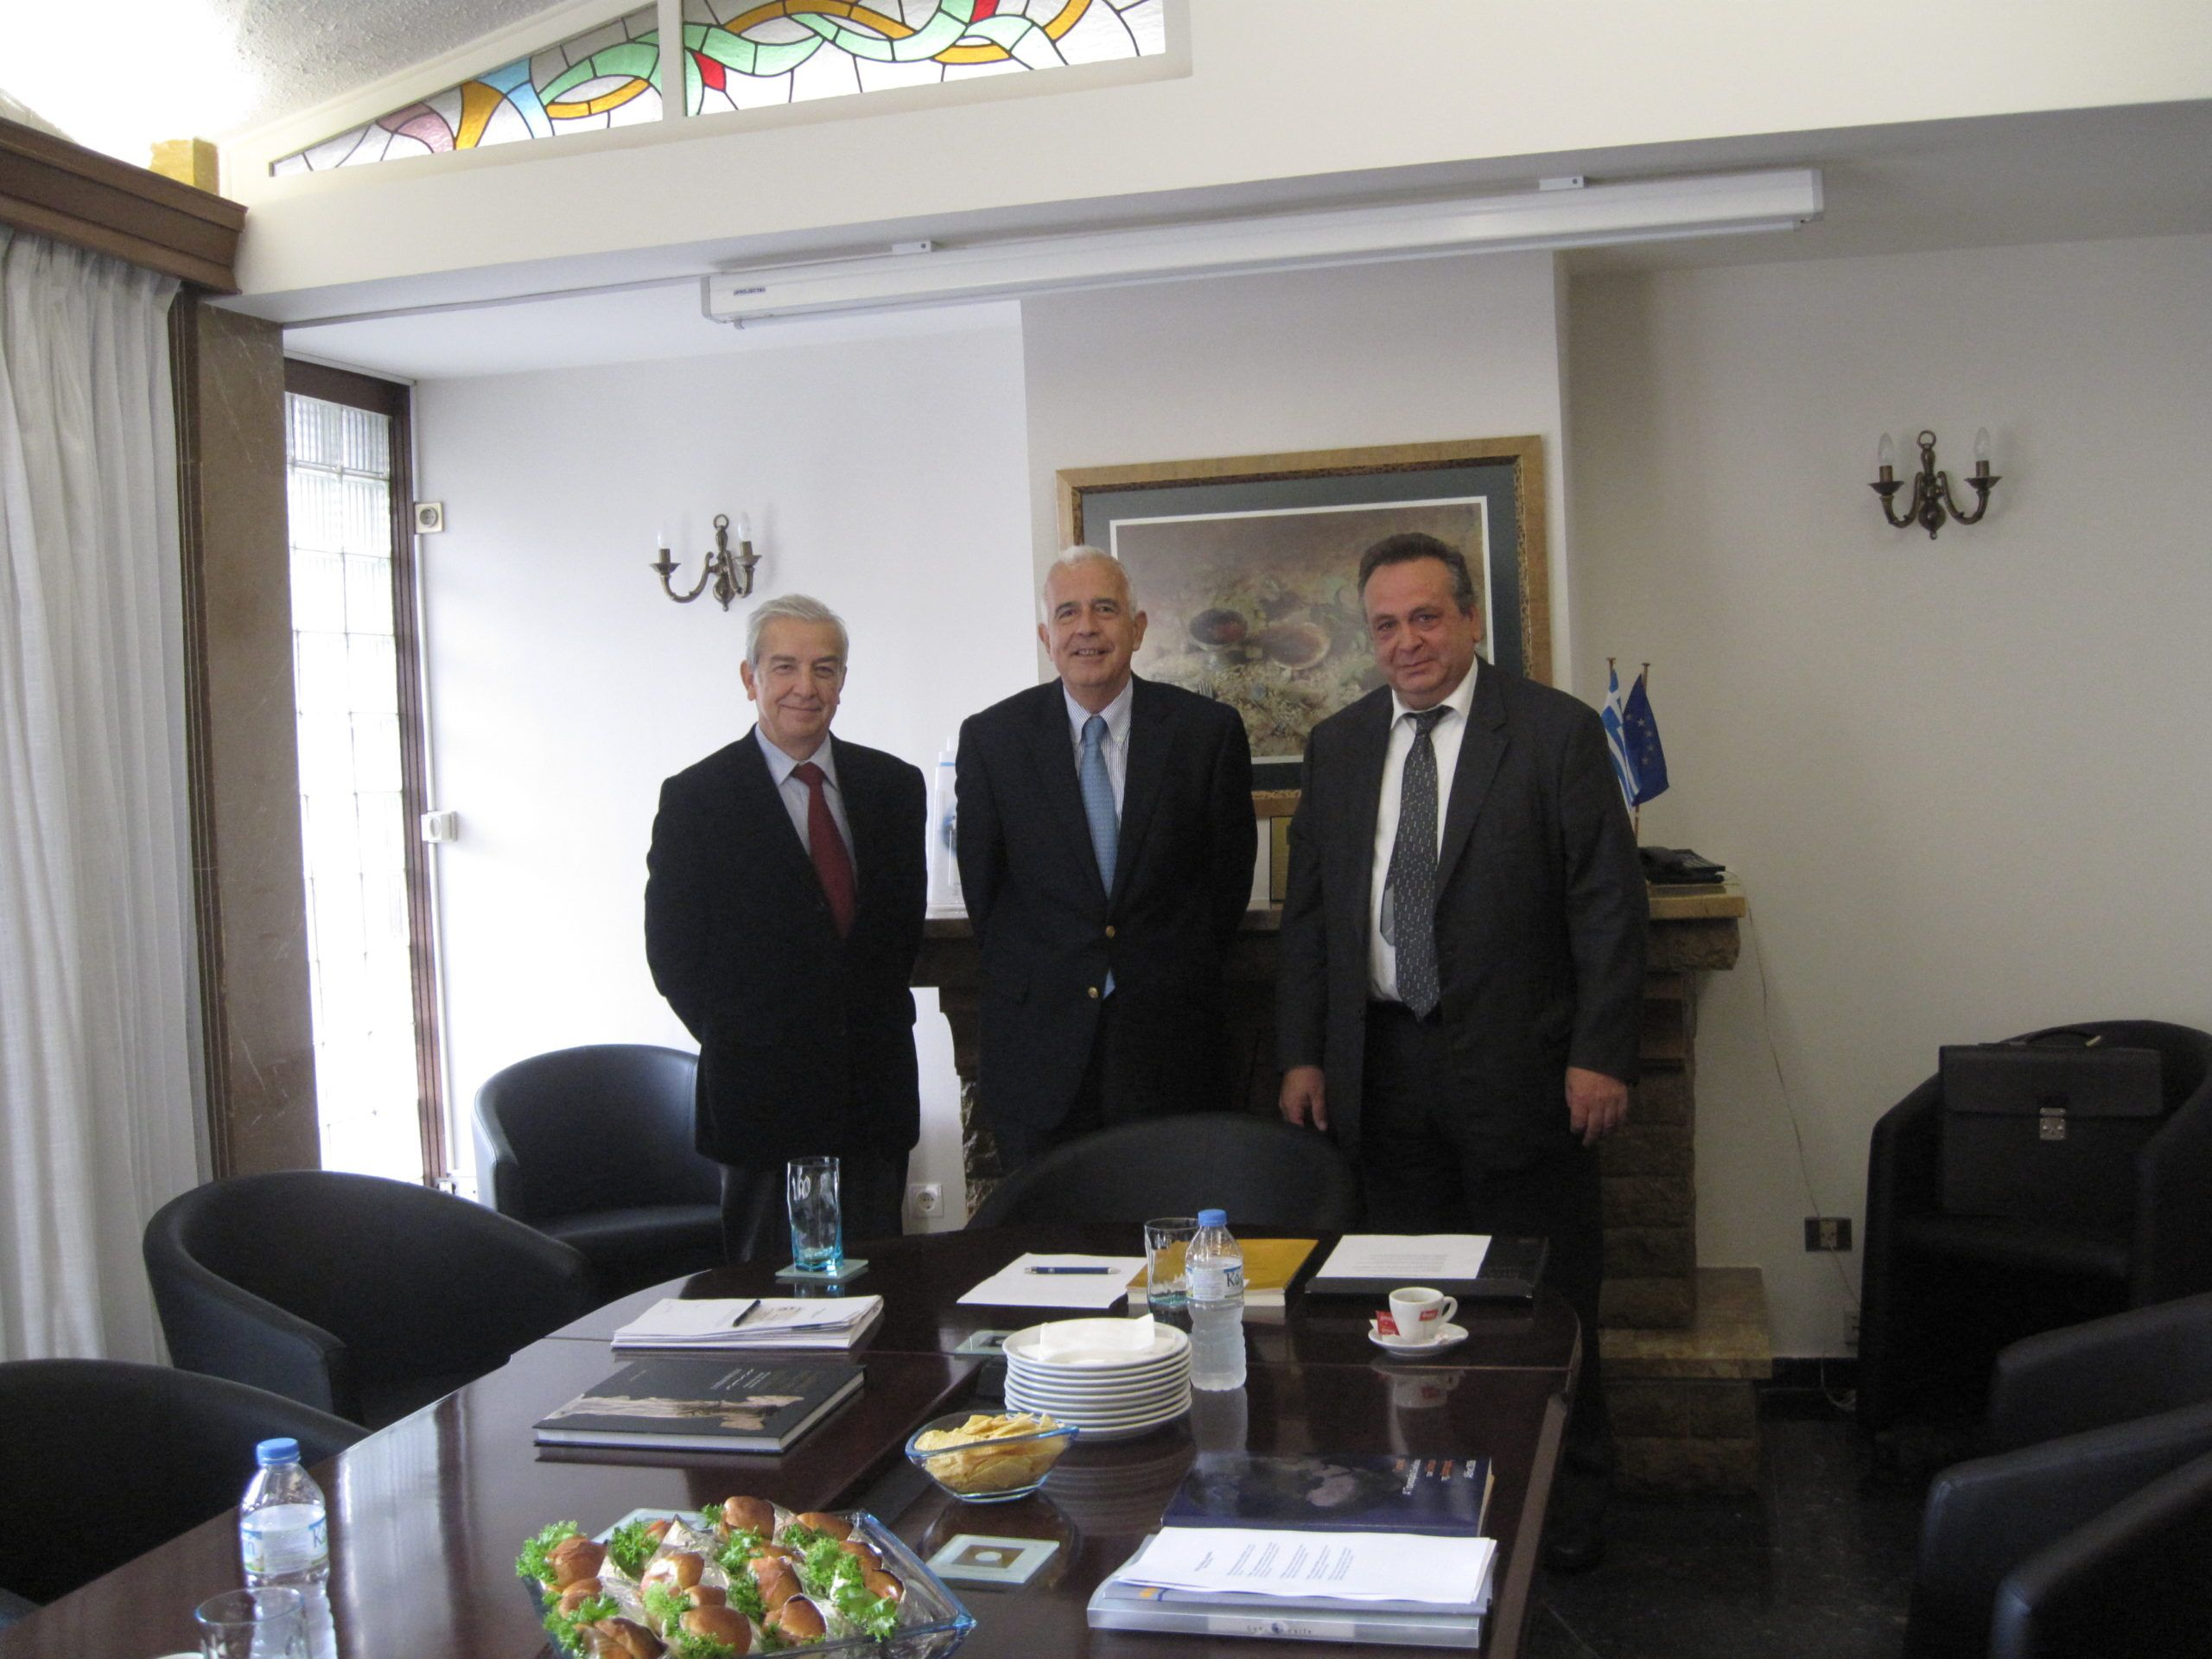 Meeting of the President of Ecumenical Hellenism with the President of the Federation of Greek Food Industries (SEVT)